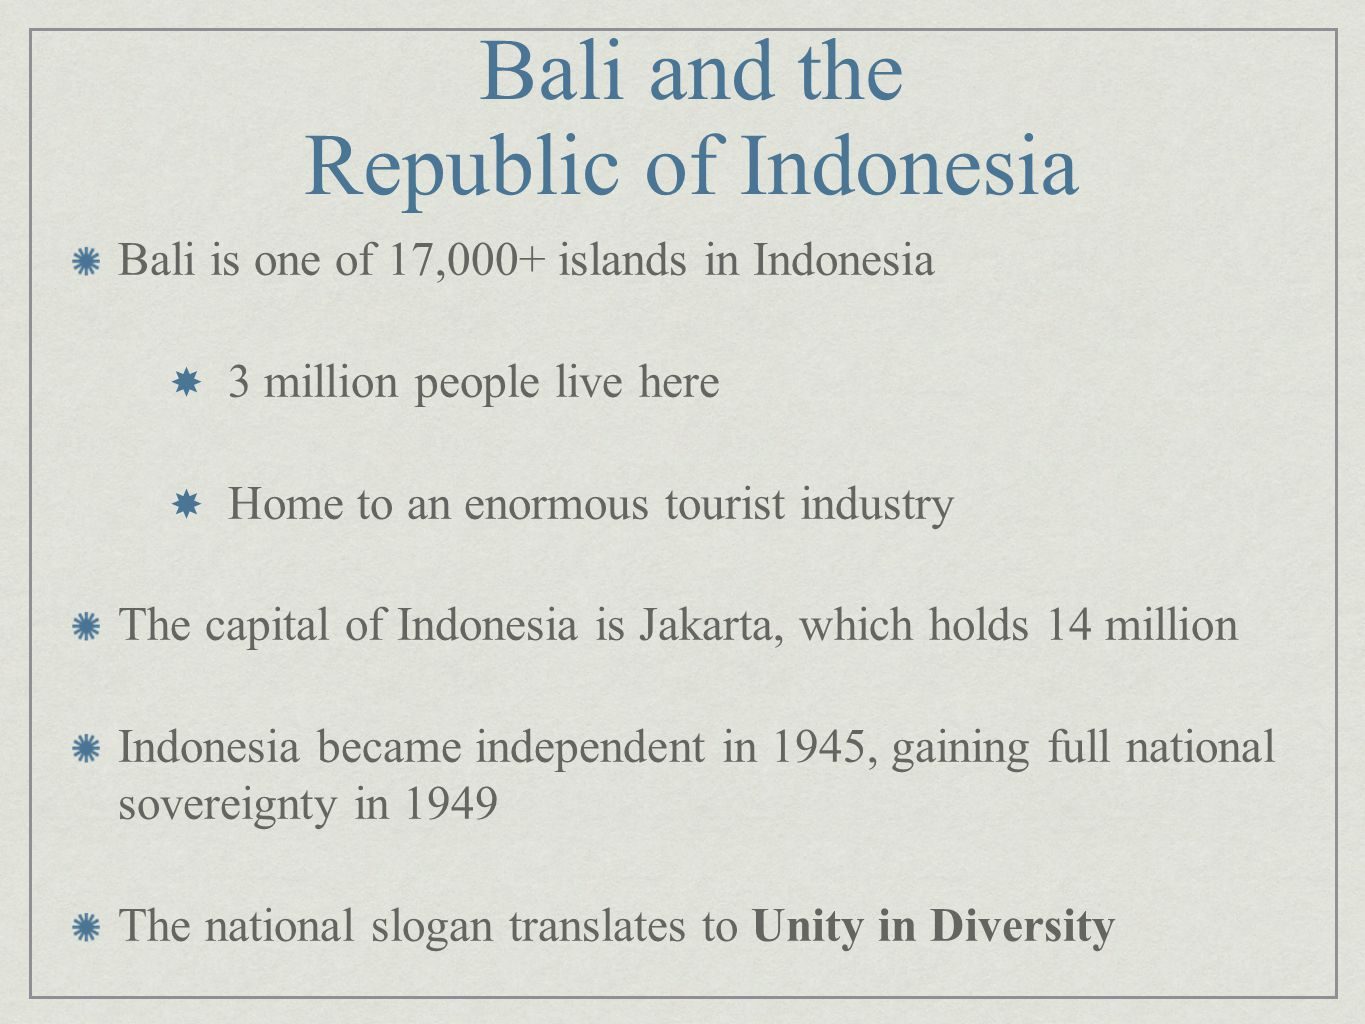 Bali and the Republic of Indonesia